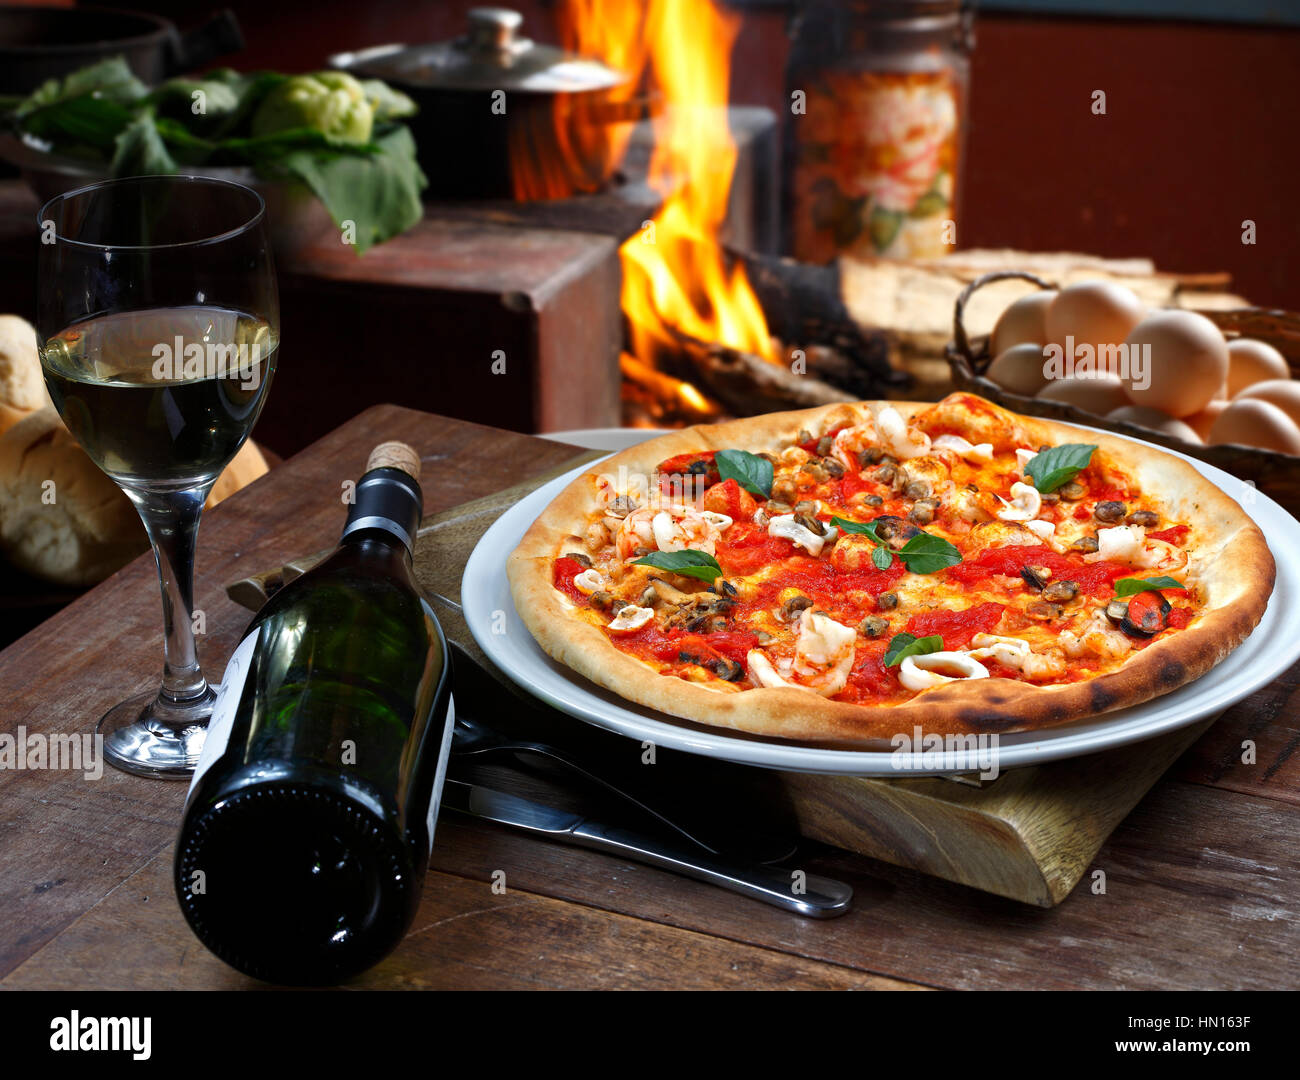 Seafood Pizza With White Wine Stock Photo 133407107 Alamy